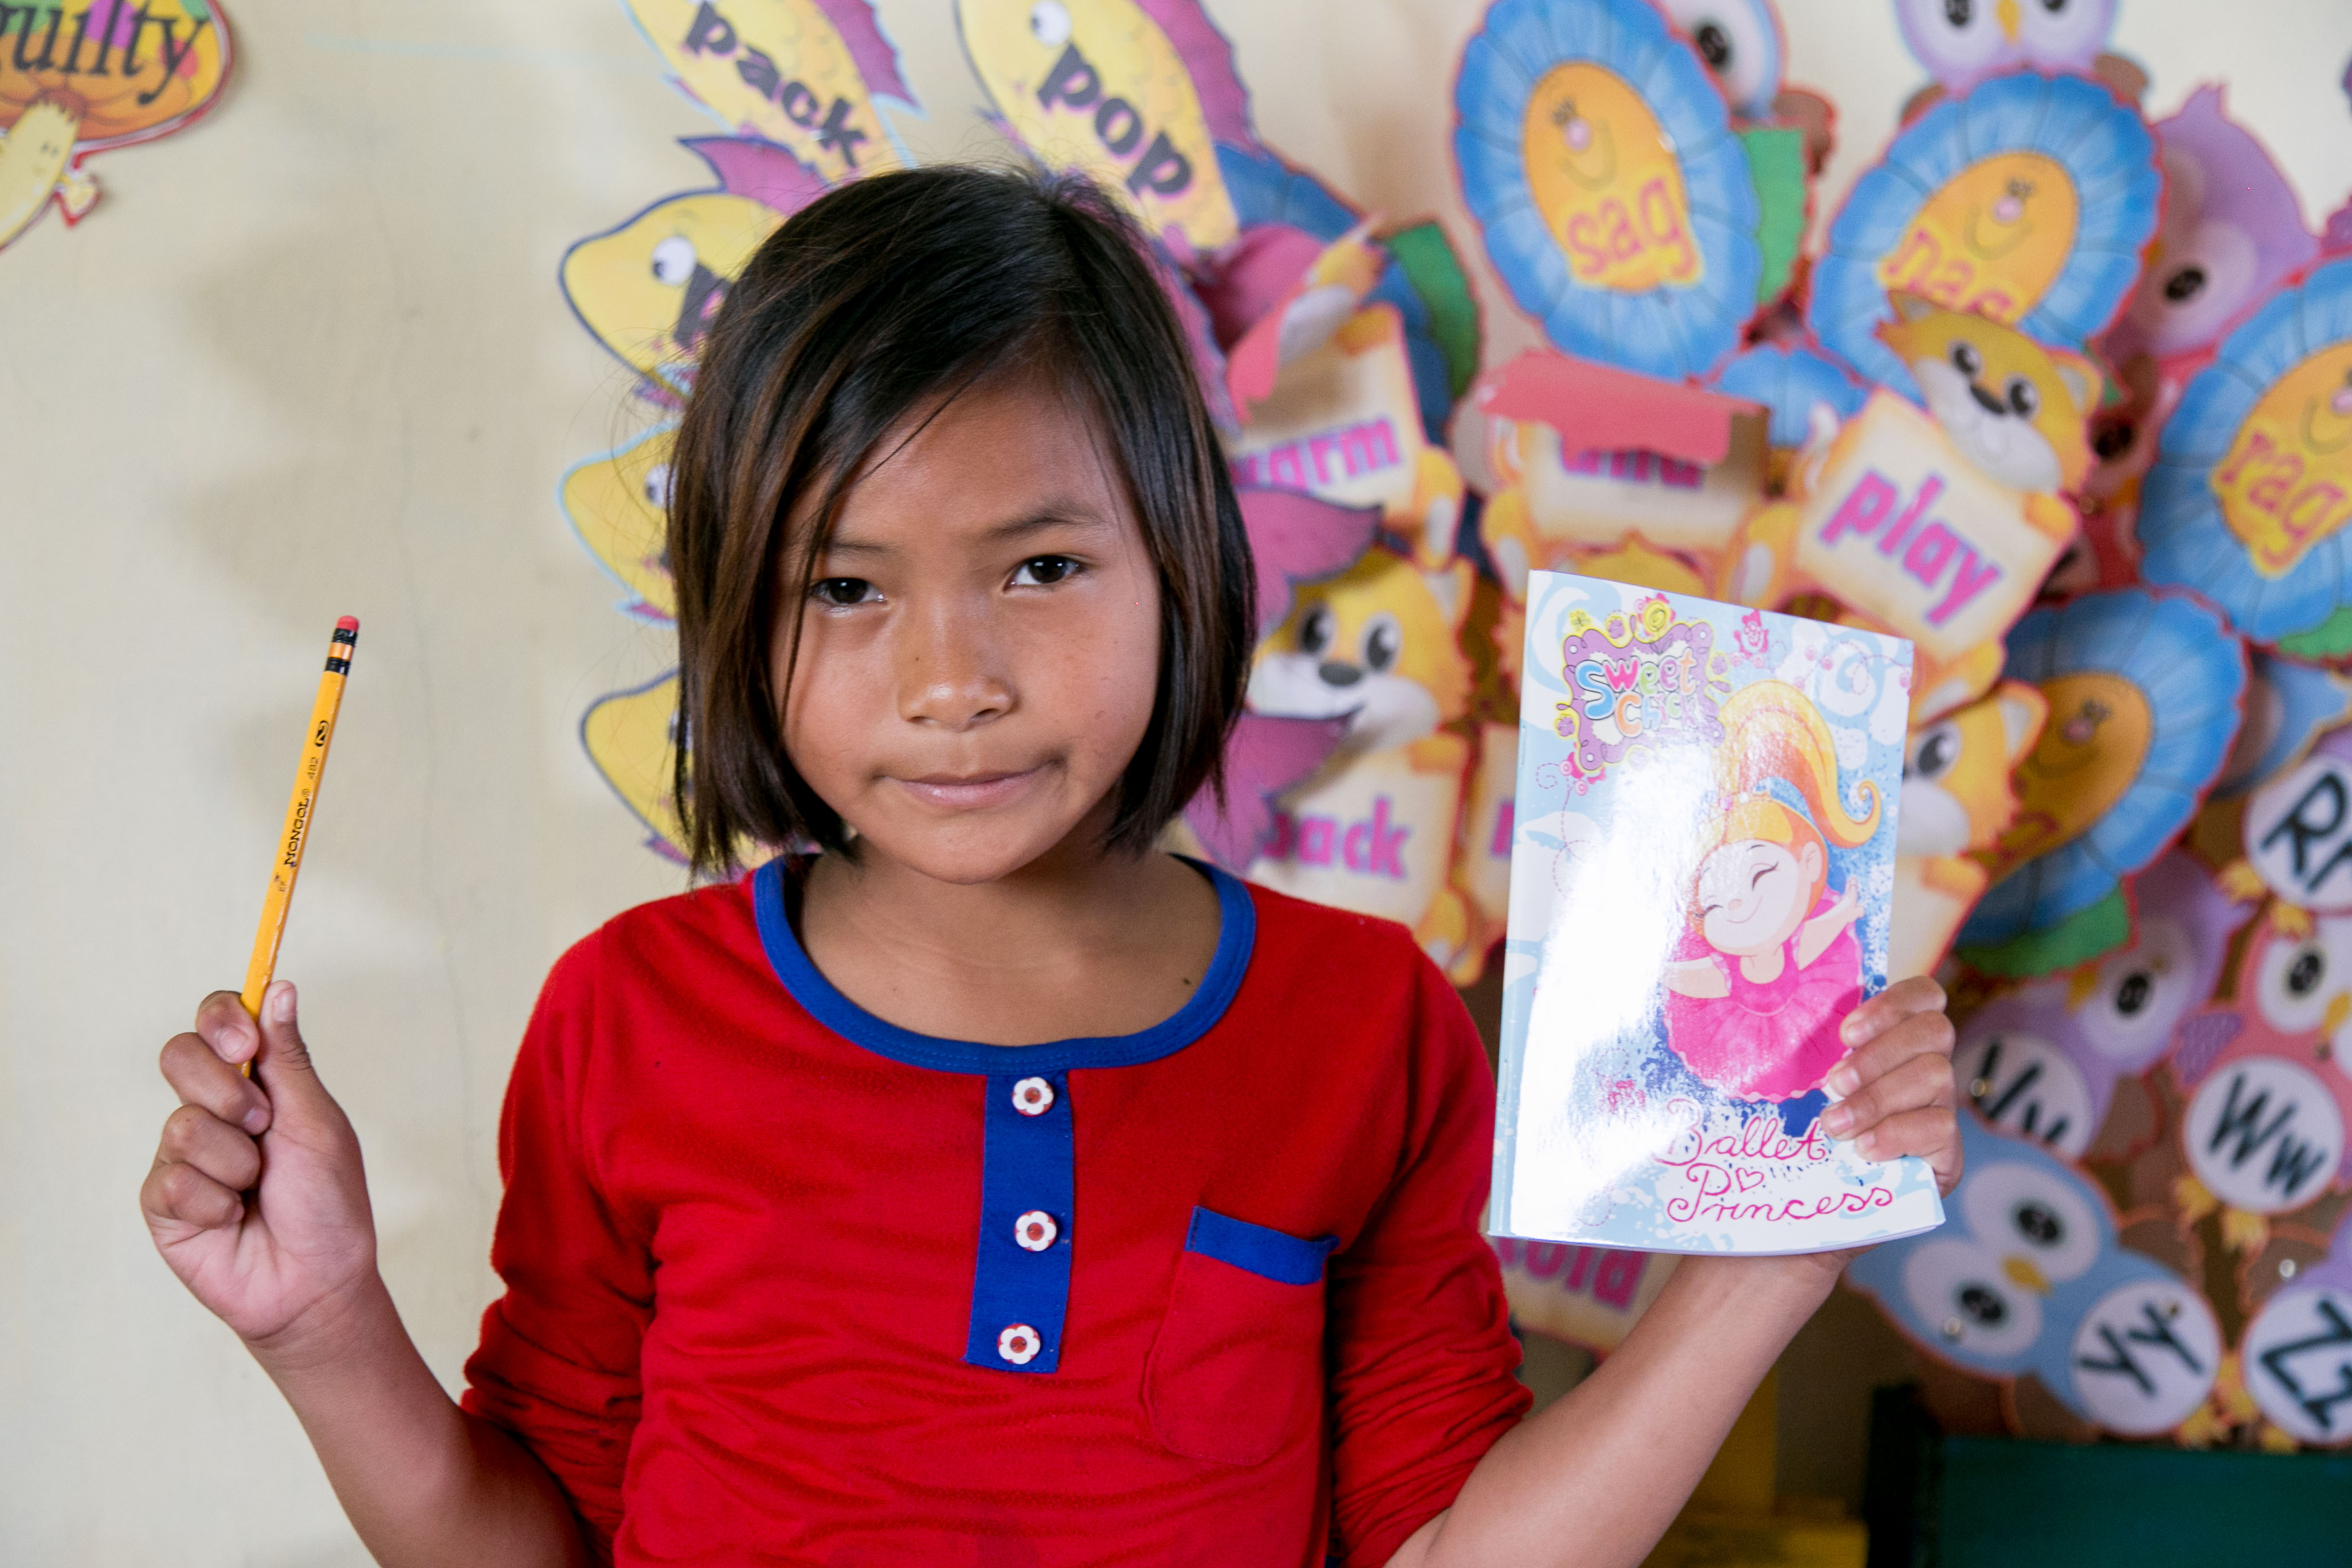 'I had to swim' – 9-year-old girl who survived Typhoon Vinta